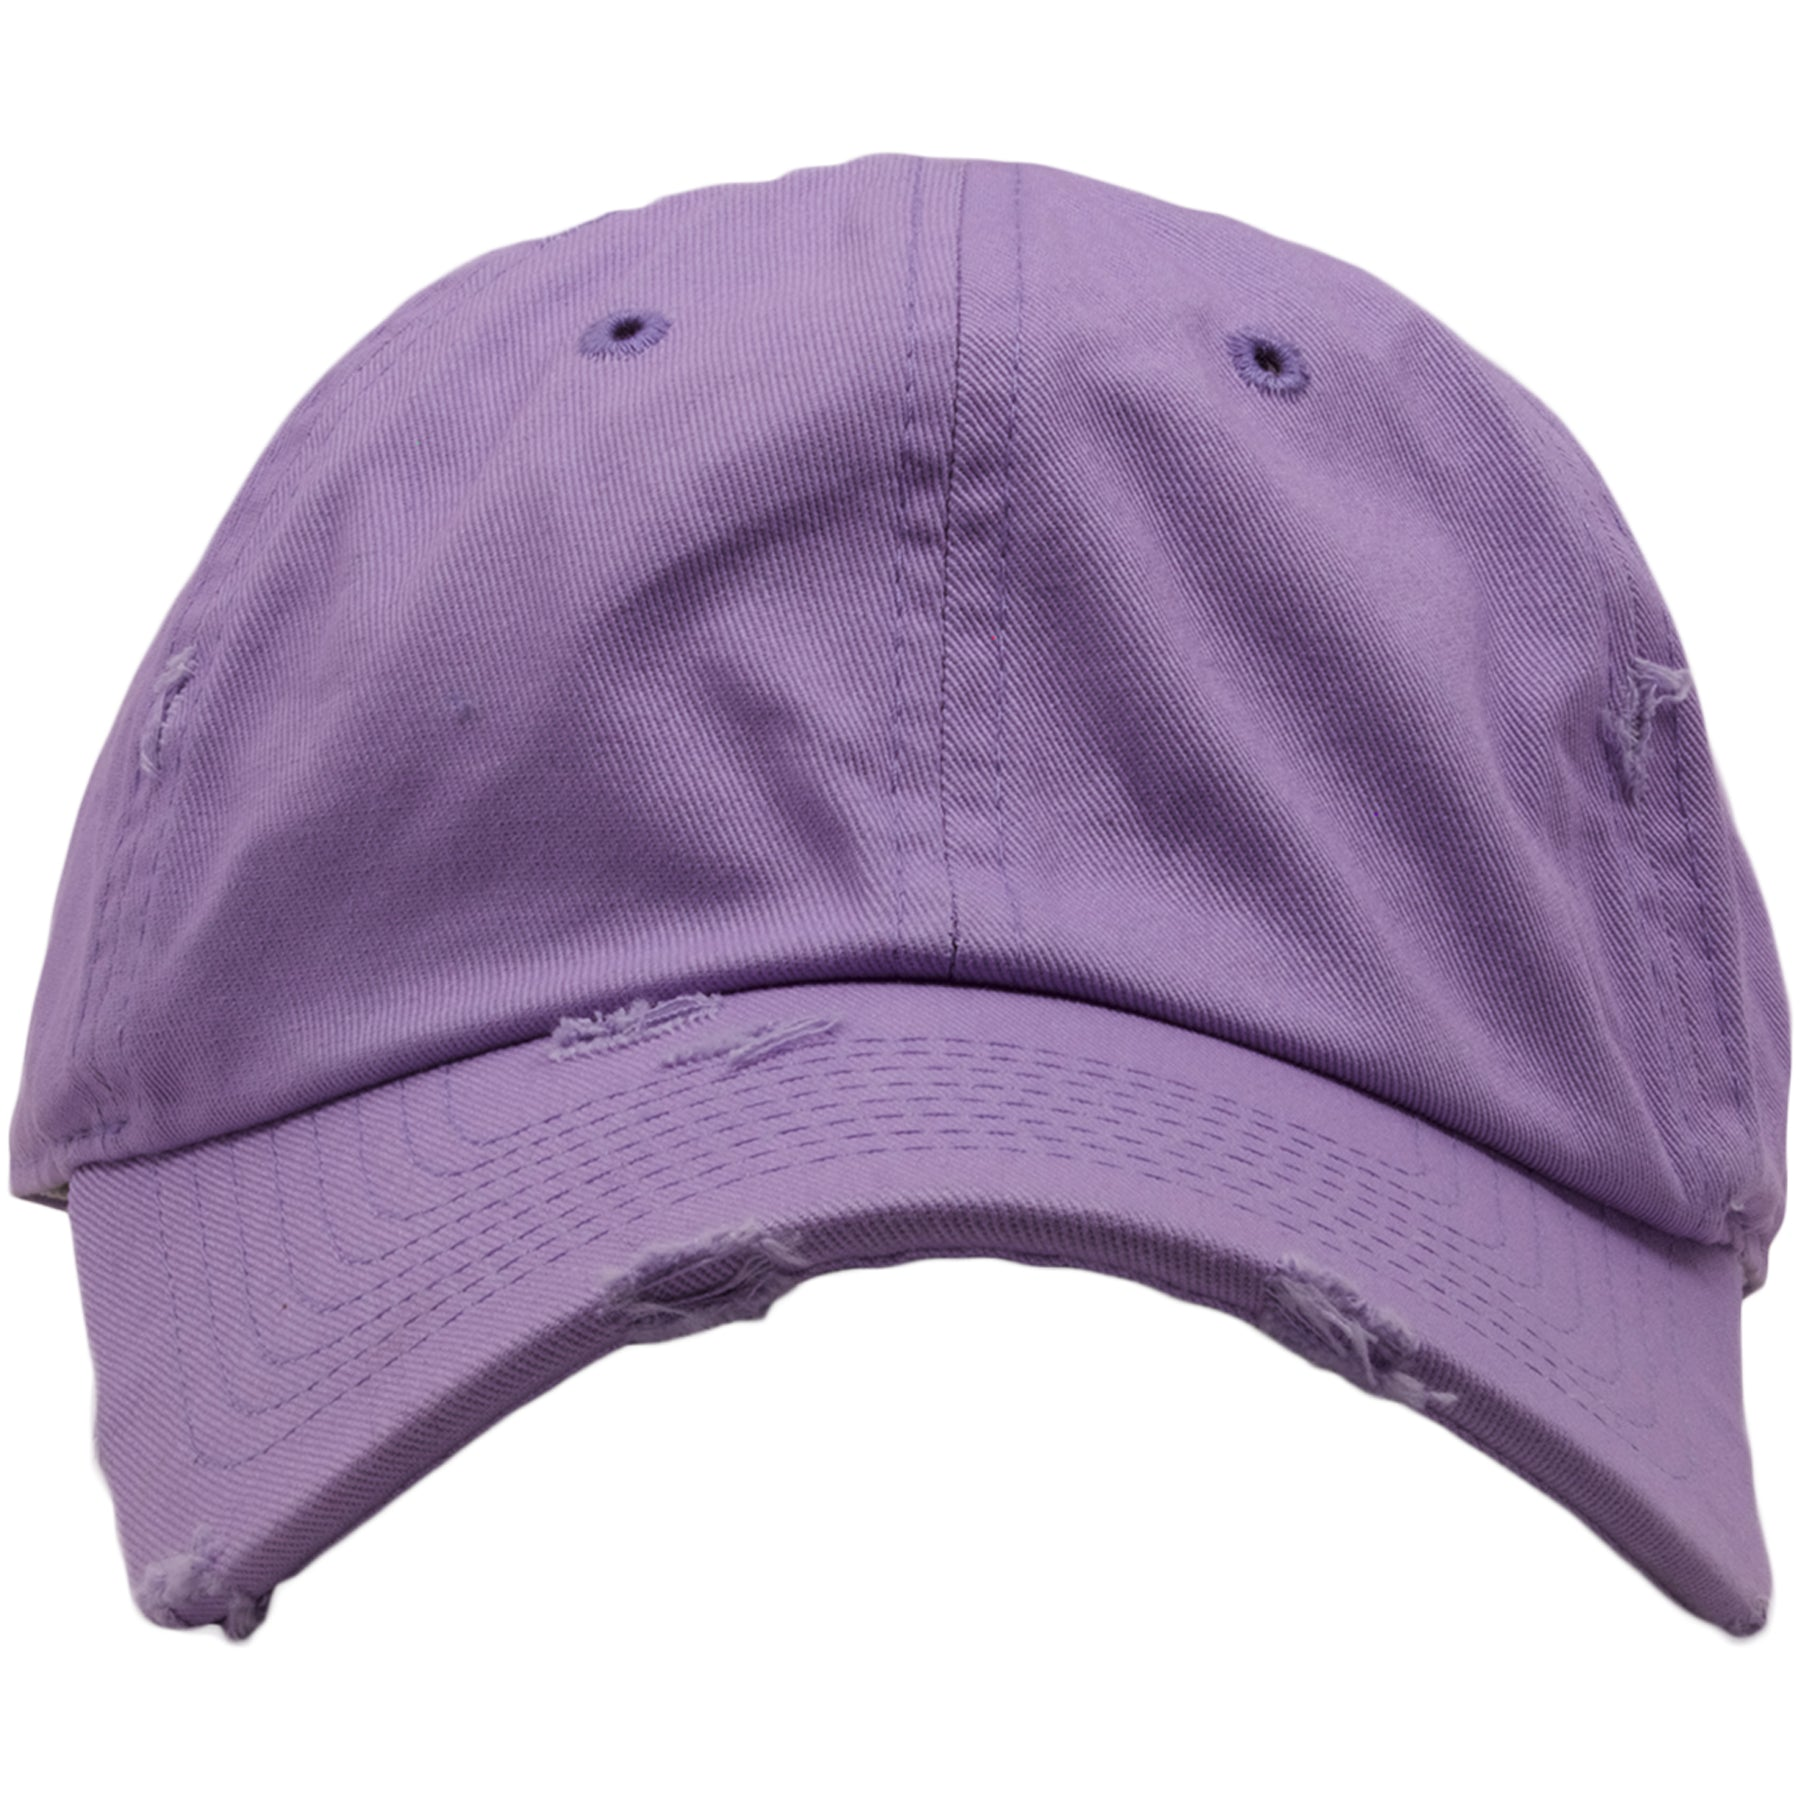 b331414df5bc17 The light purple blank distressed dad hat is solid light blue and made out  of 100